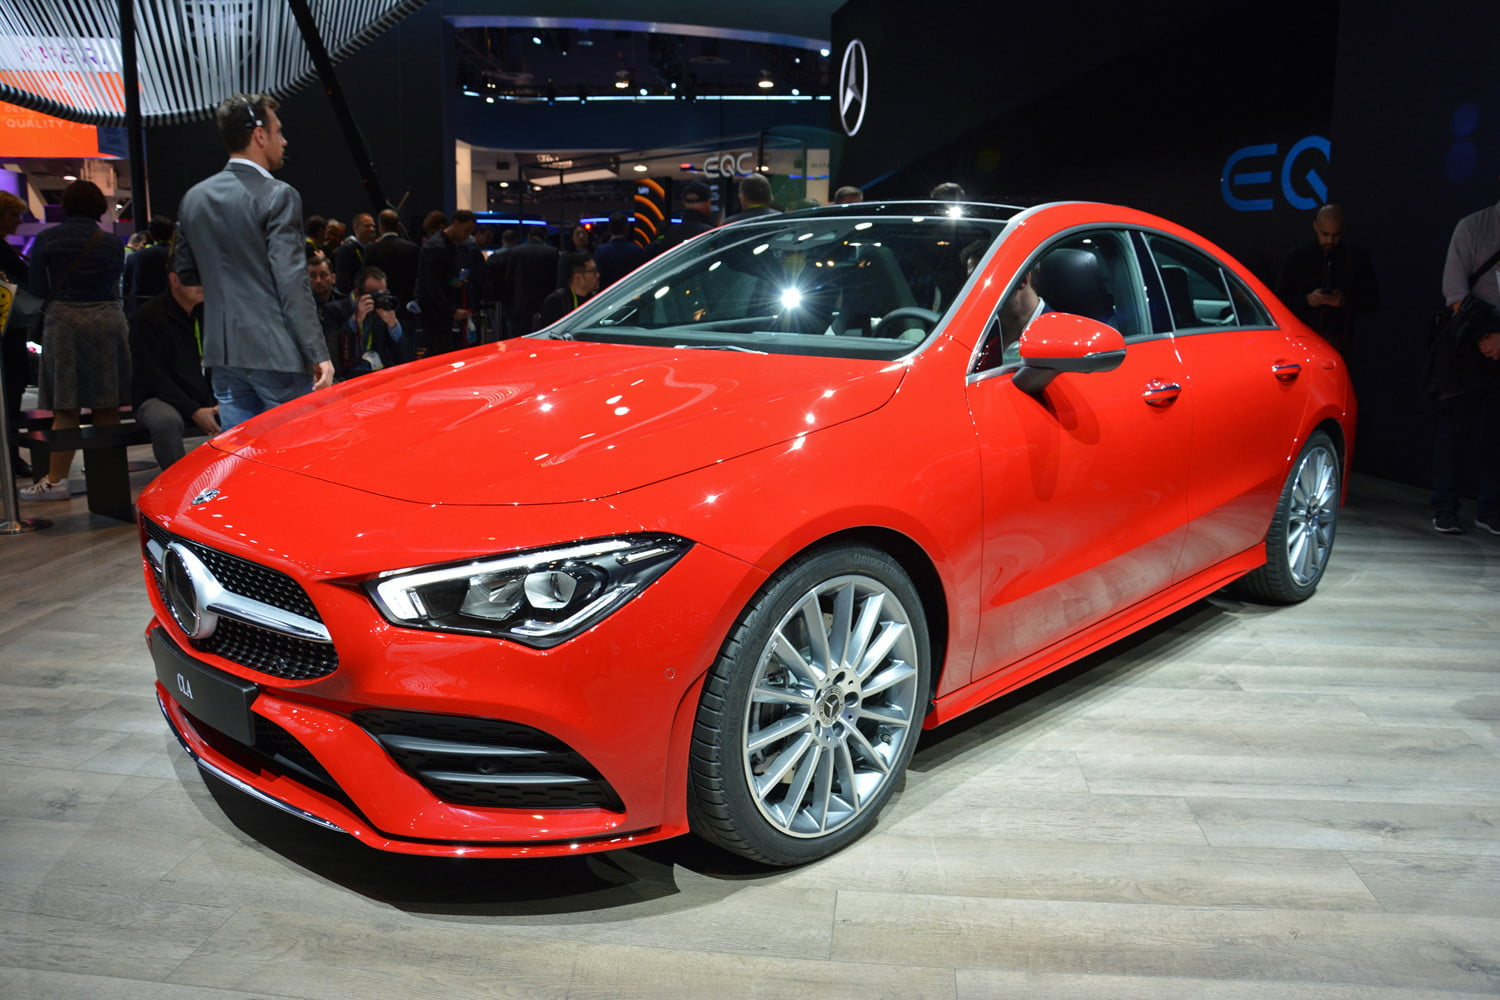 At Ces 2019 Mercedes Benz Shows Off 2020 Cla With Design Led Styling